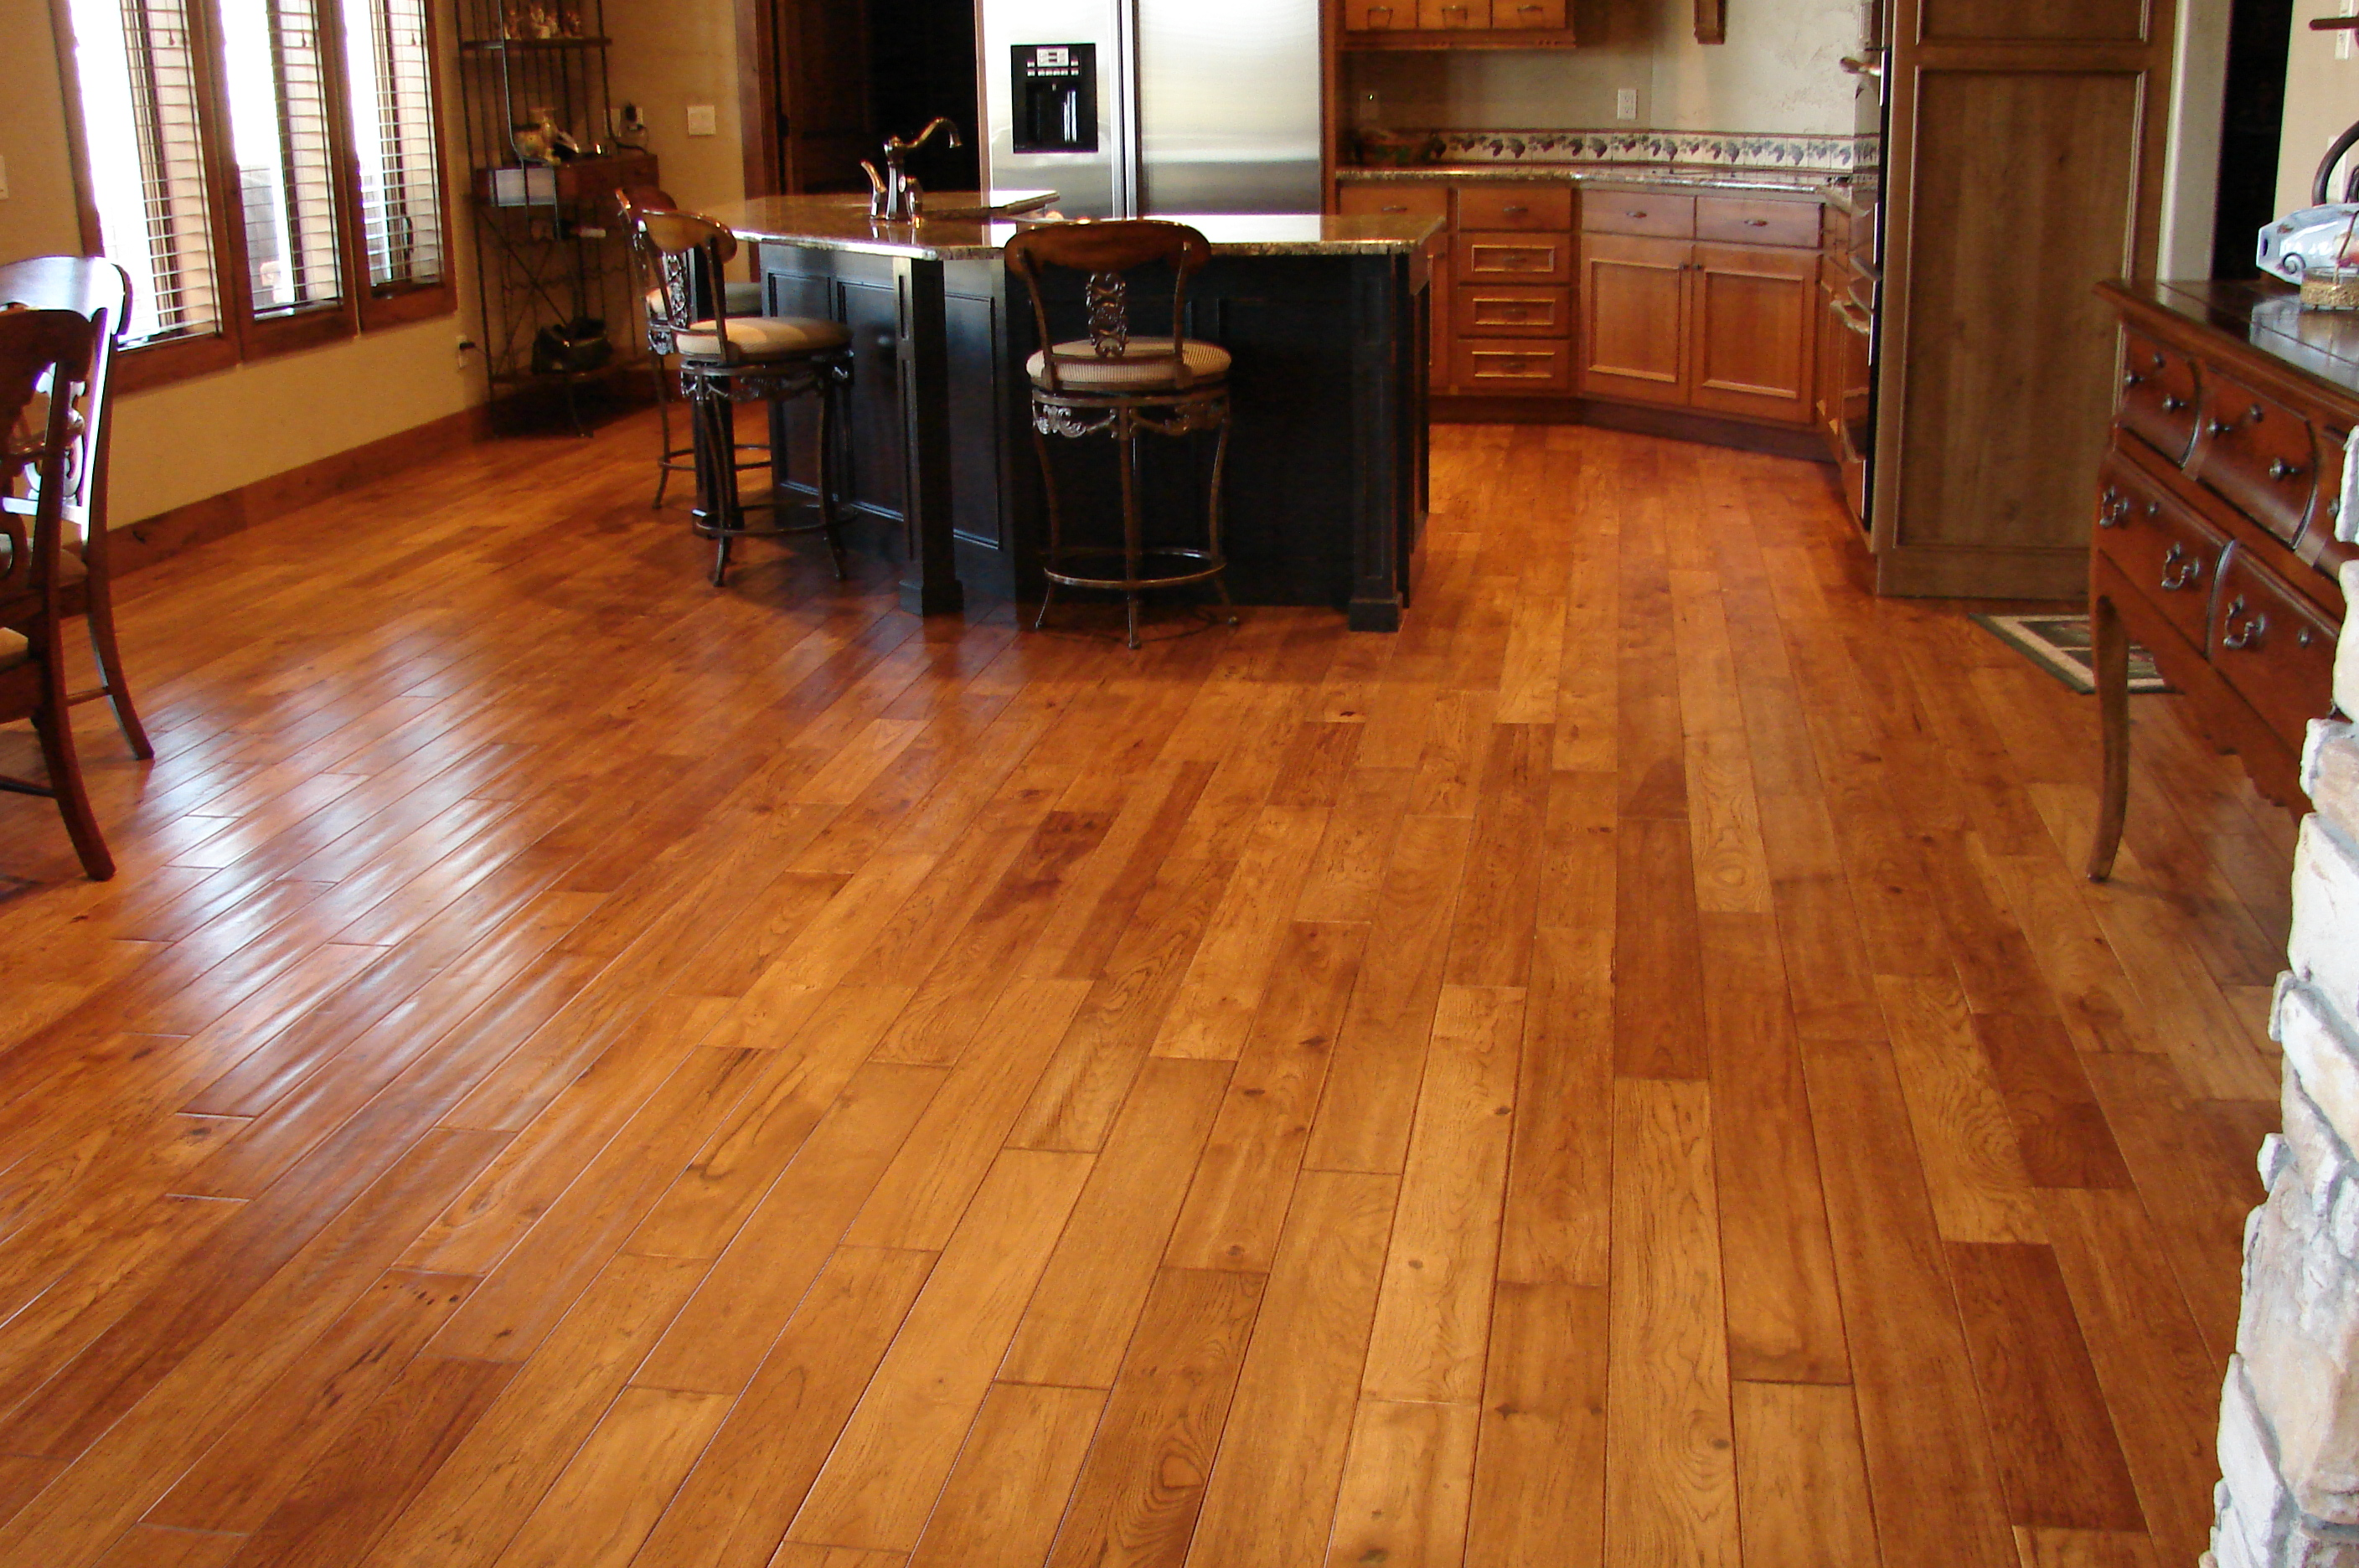 hardwood floors kitchen. Big Kitchen Hardwood Floor Floors